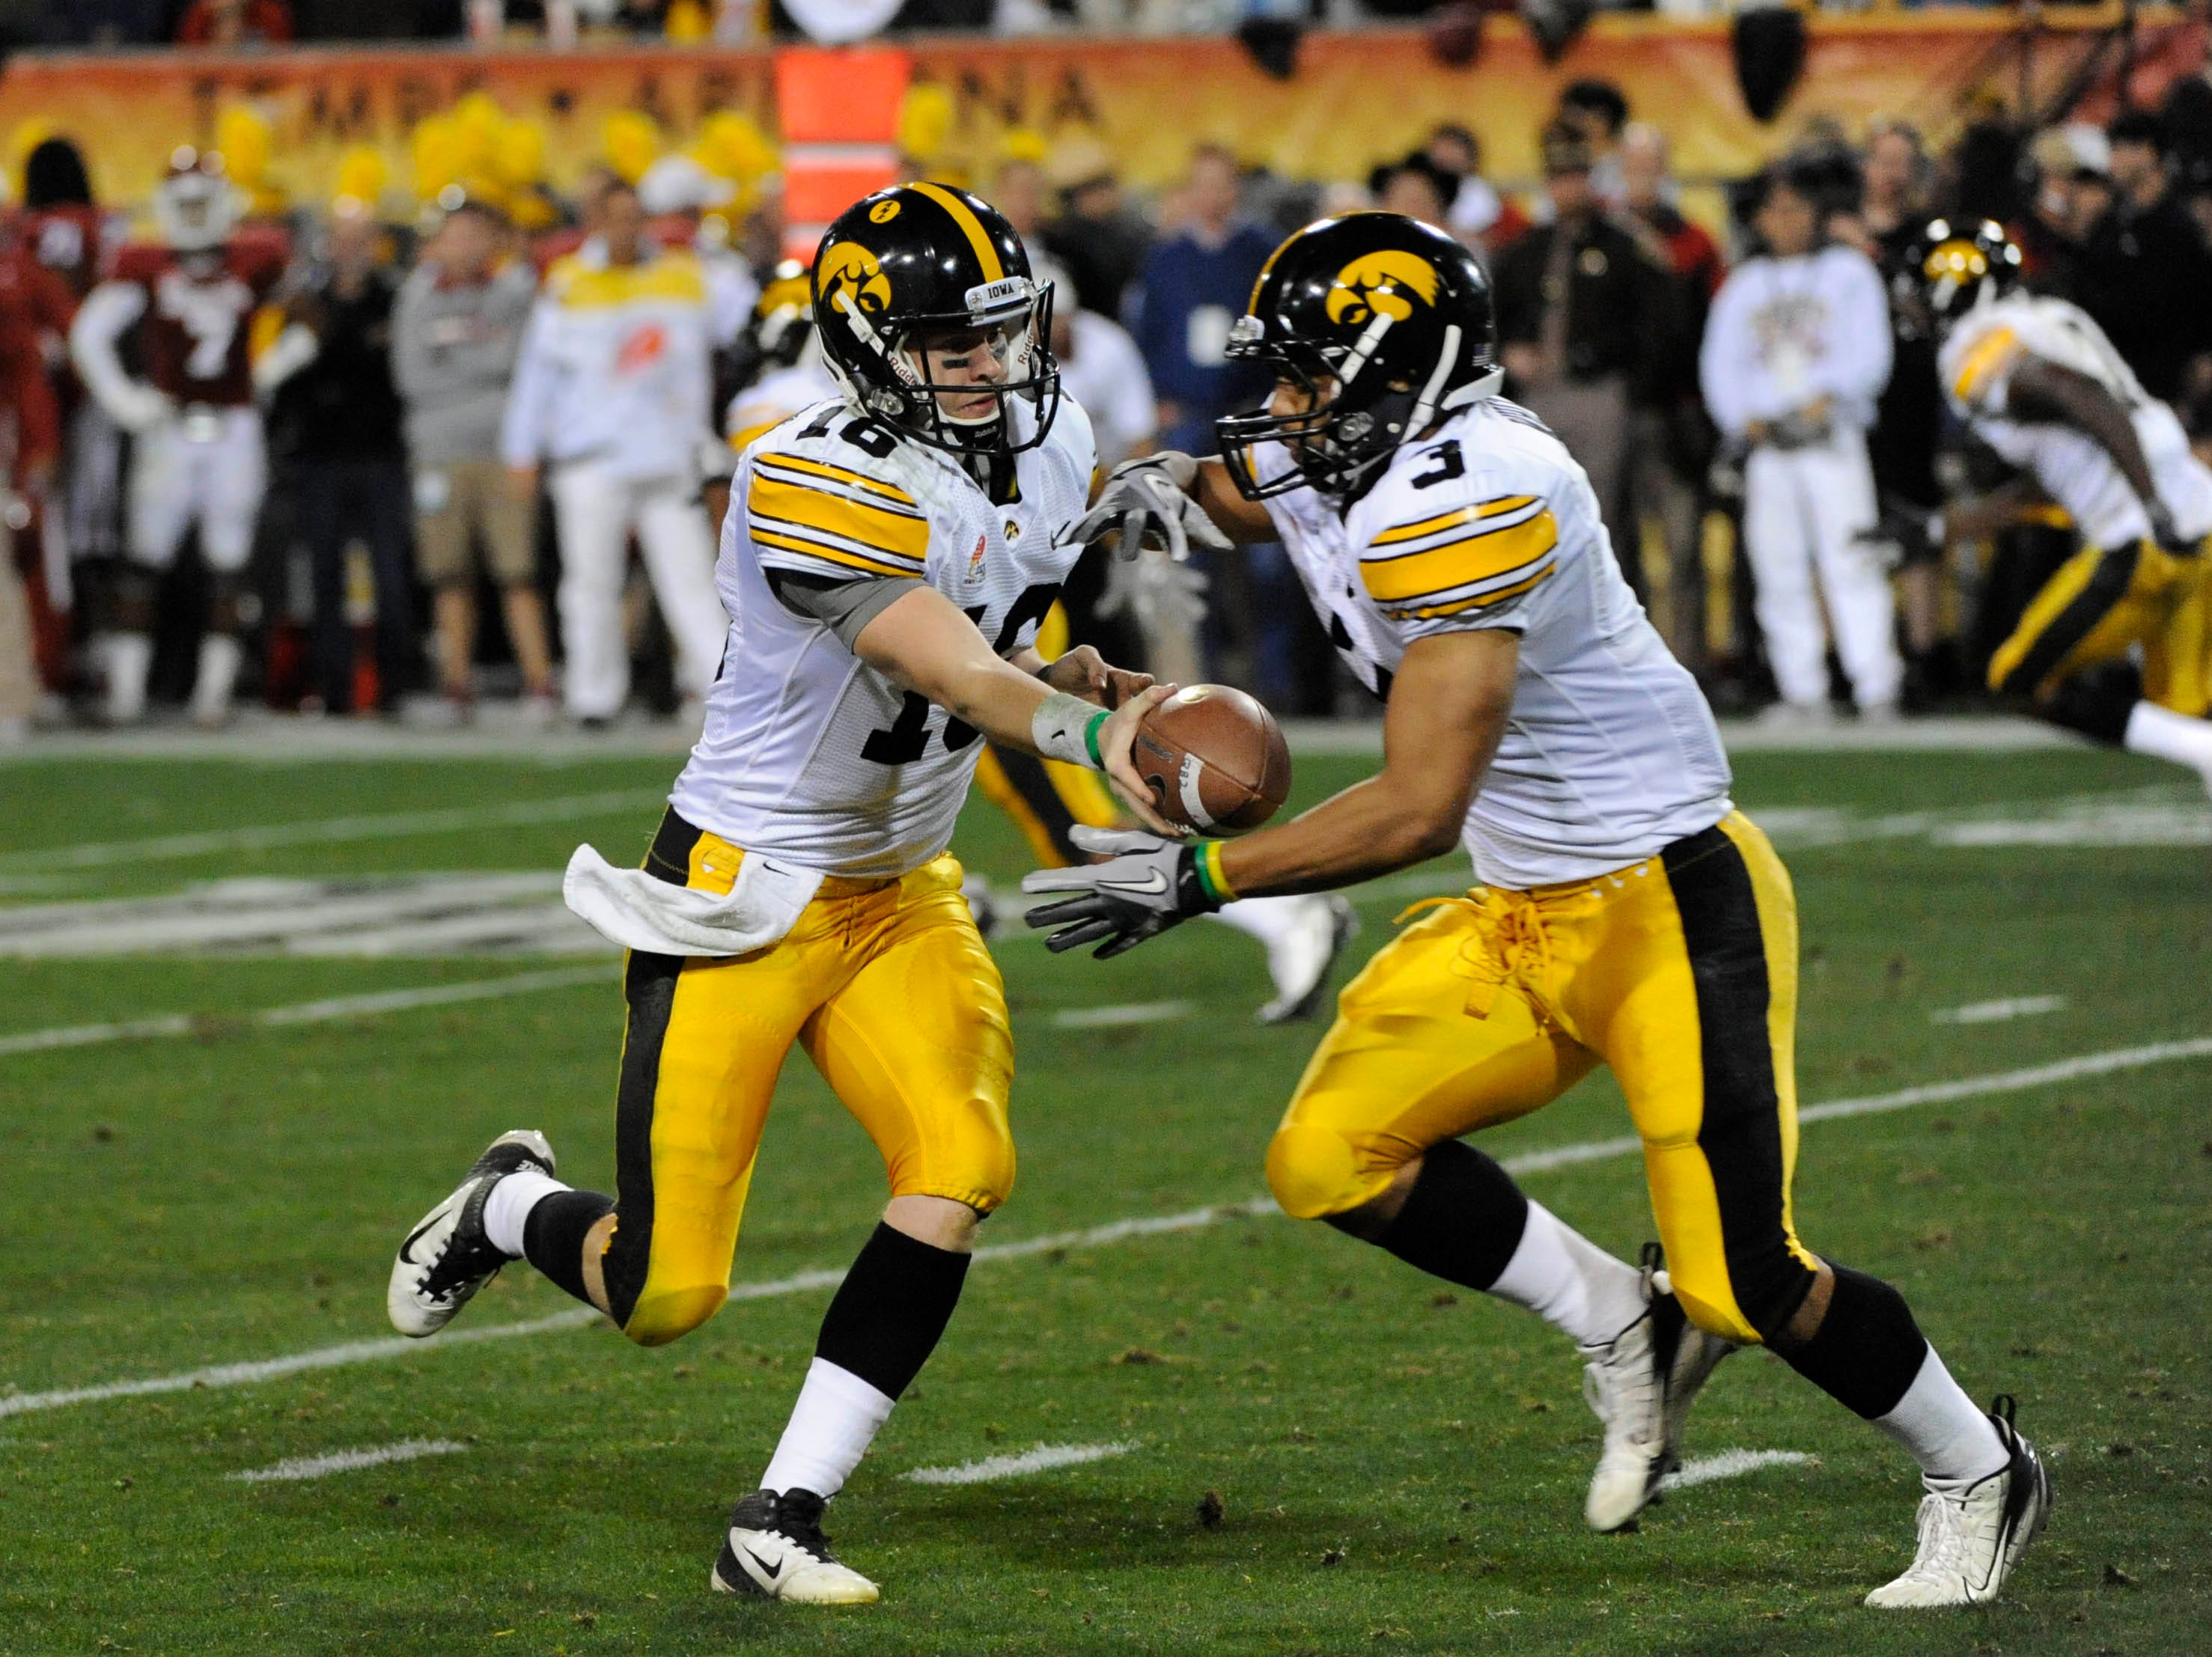 Dec 30, 2011; Tempe, AZ, USA; Iowa Hawkeyes quarterback James Vandenberg (16) hands the ball off to Iowa Hawkeyes running back Jason White (3) during the first half of the 2011 Insight Bowl at the Sun Devil Stadium. Mandatory Credit: Richard Mackson-USA TODAY Sports